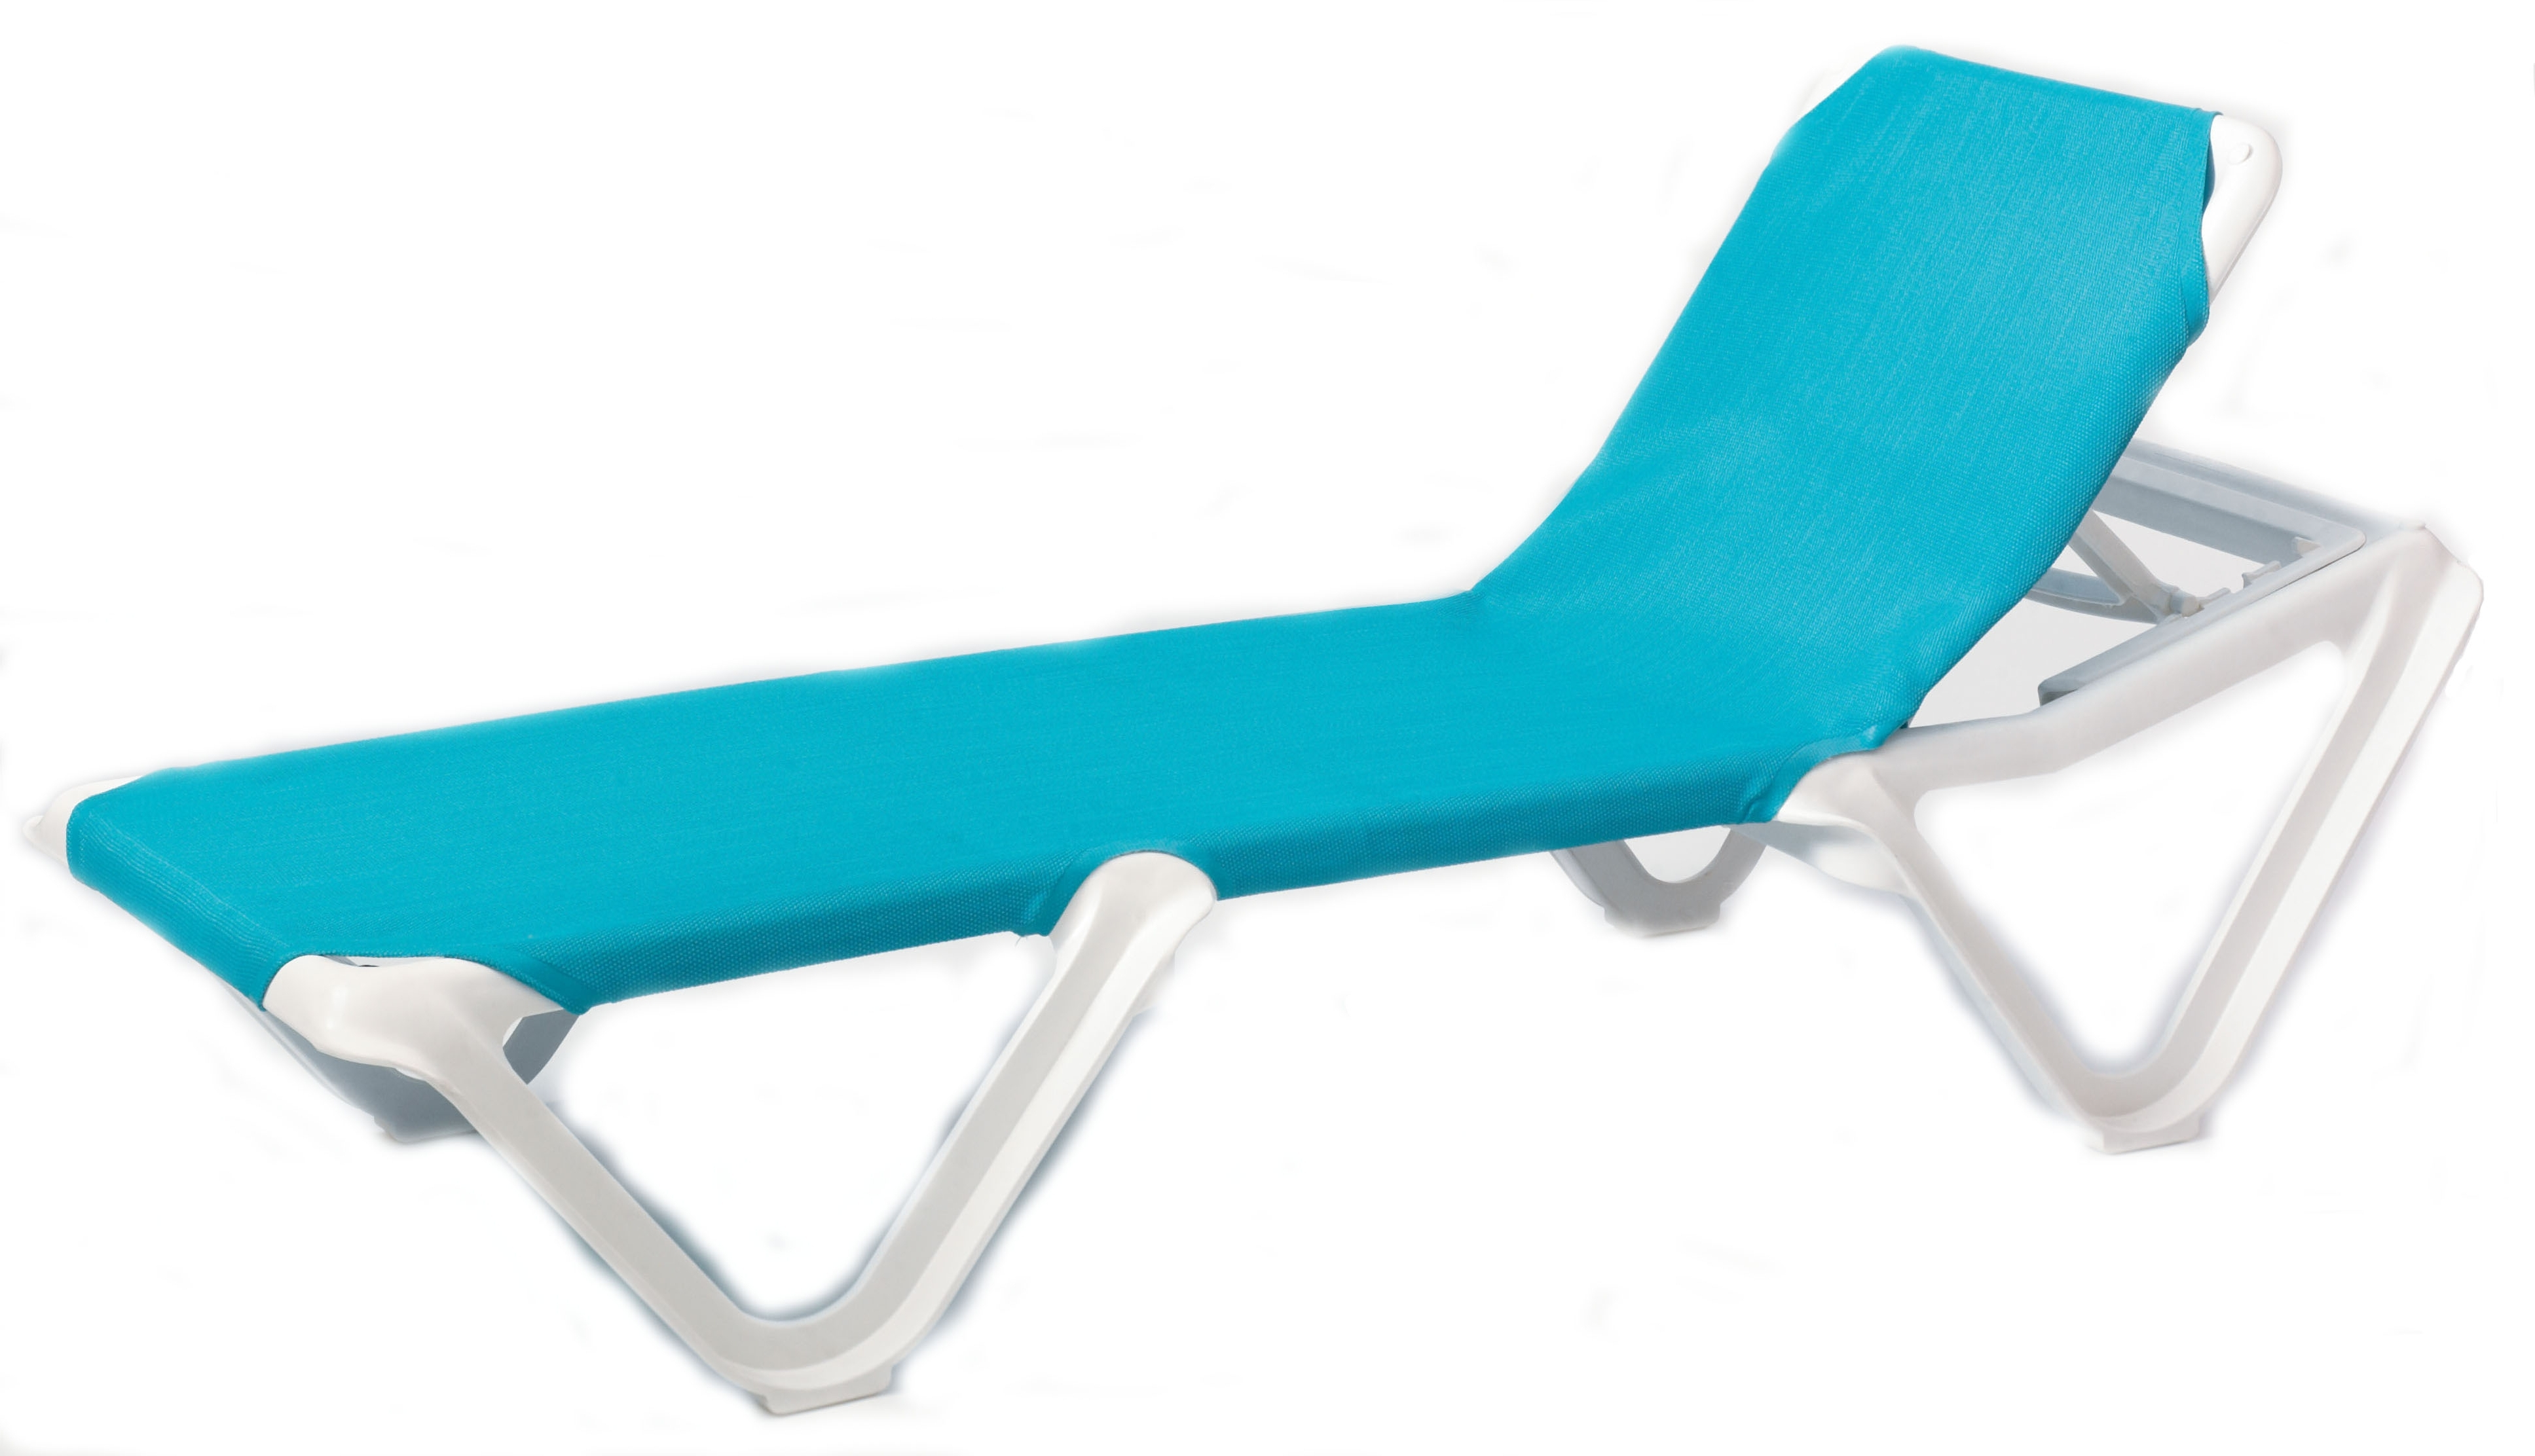 Most Current Chaise Lounge Chairs For Poolside Regarding Pool Chaise Lounge Chairs Resin • Lounge Chairs Ideas (View 7 of 15)